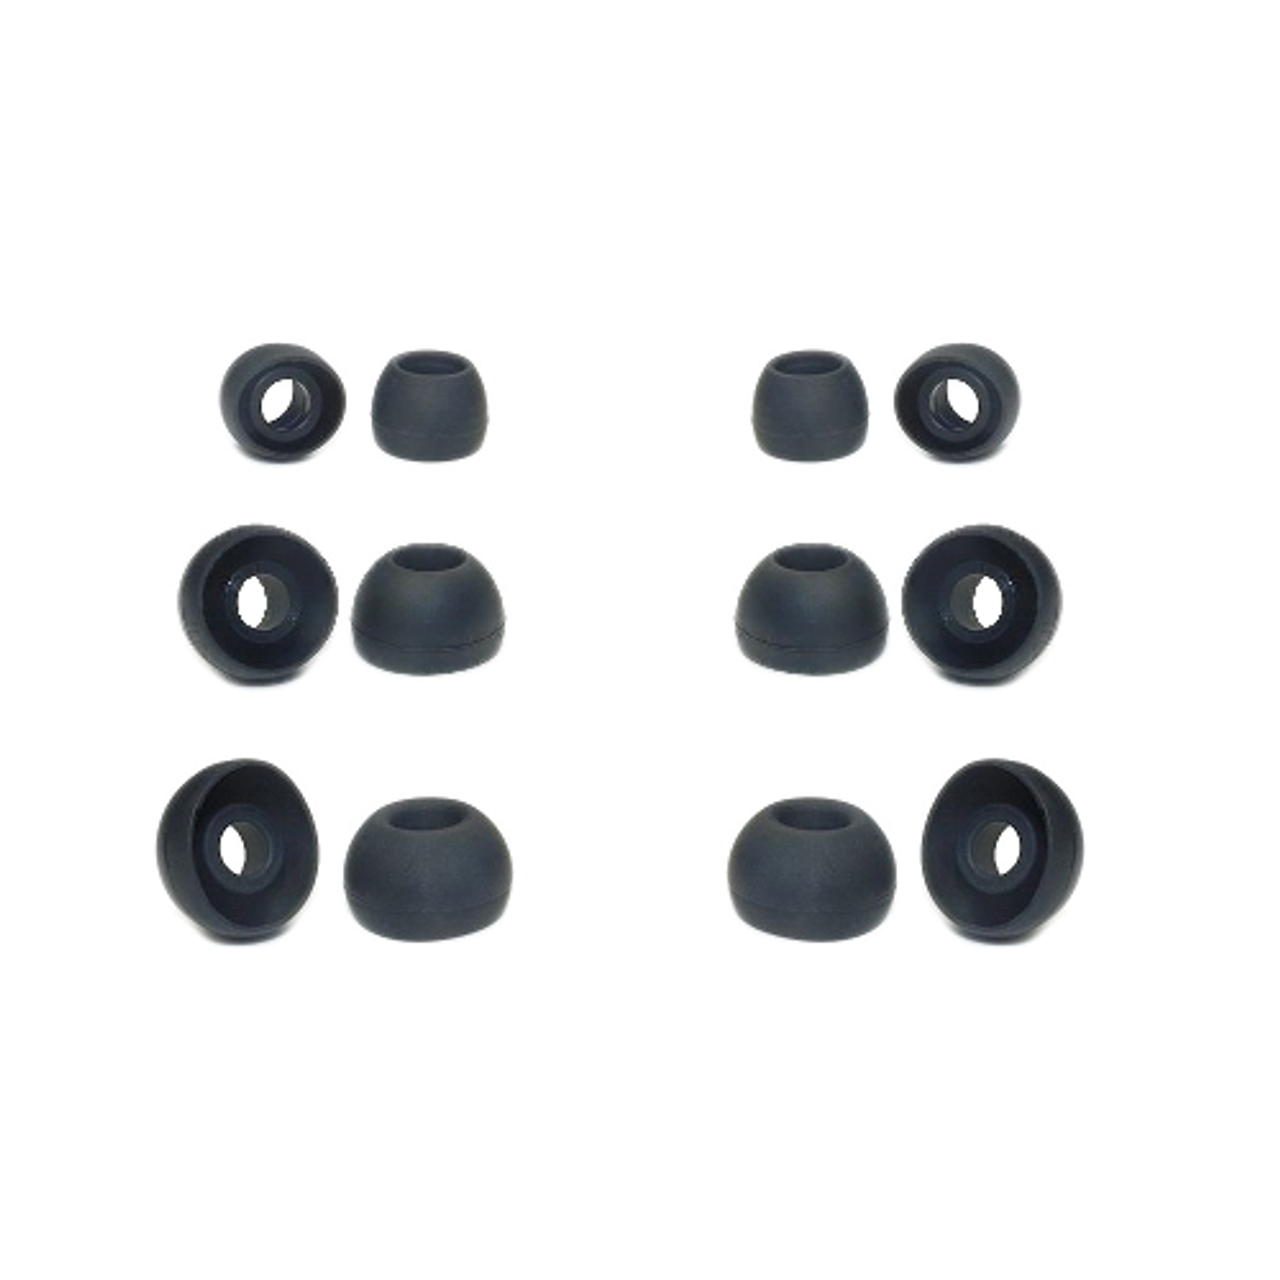 replacement earbud tips for Maxell earphones